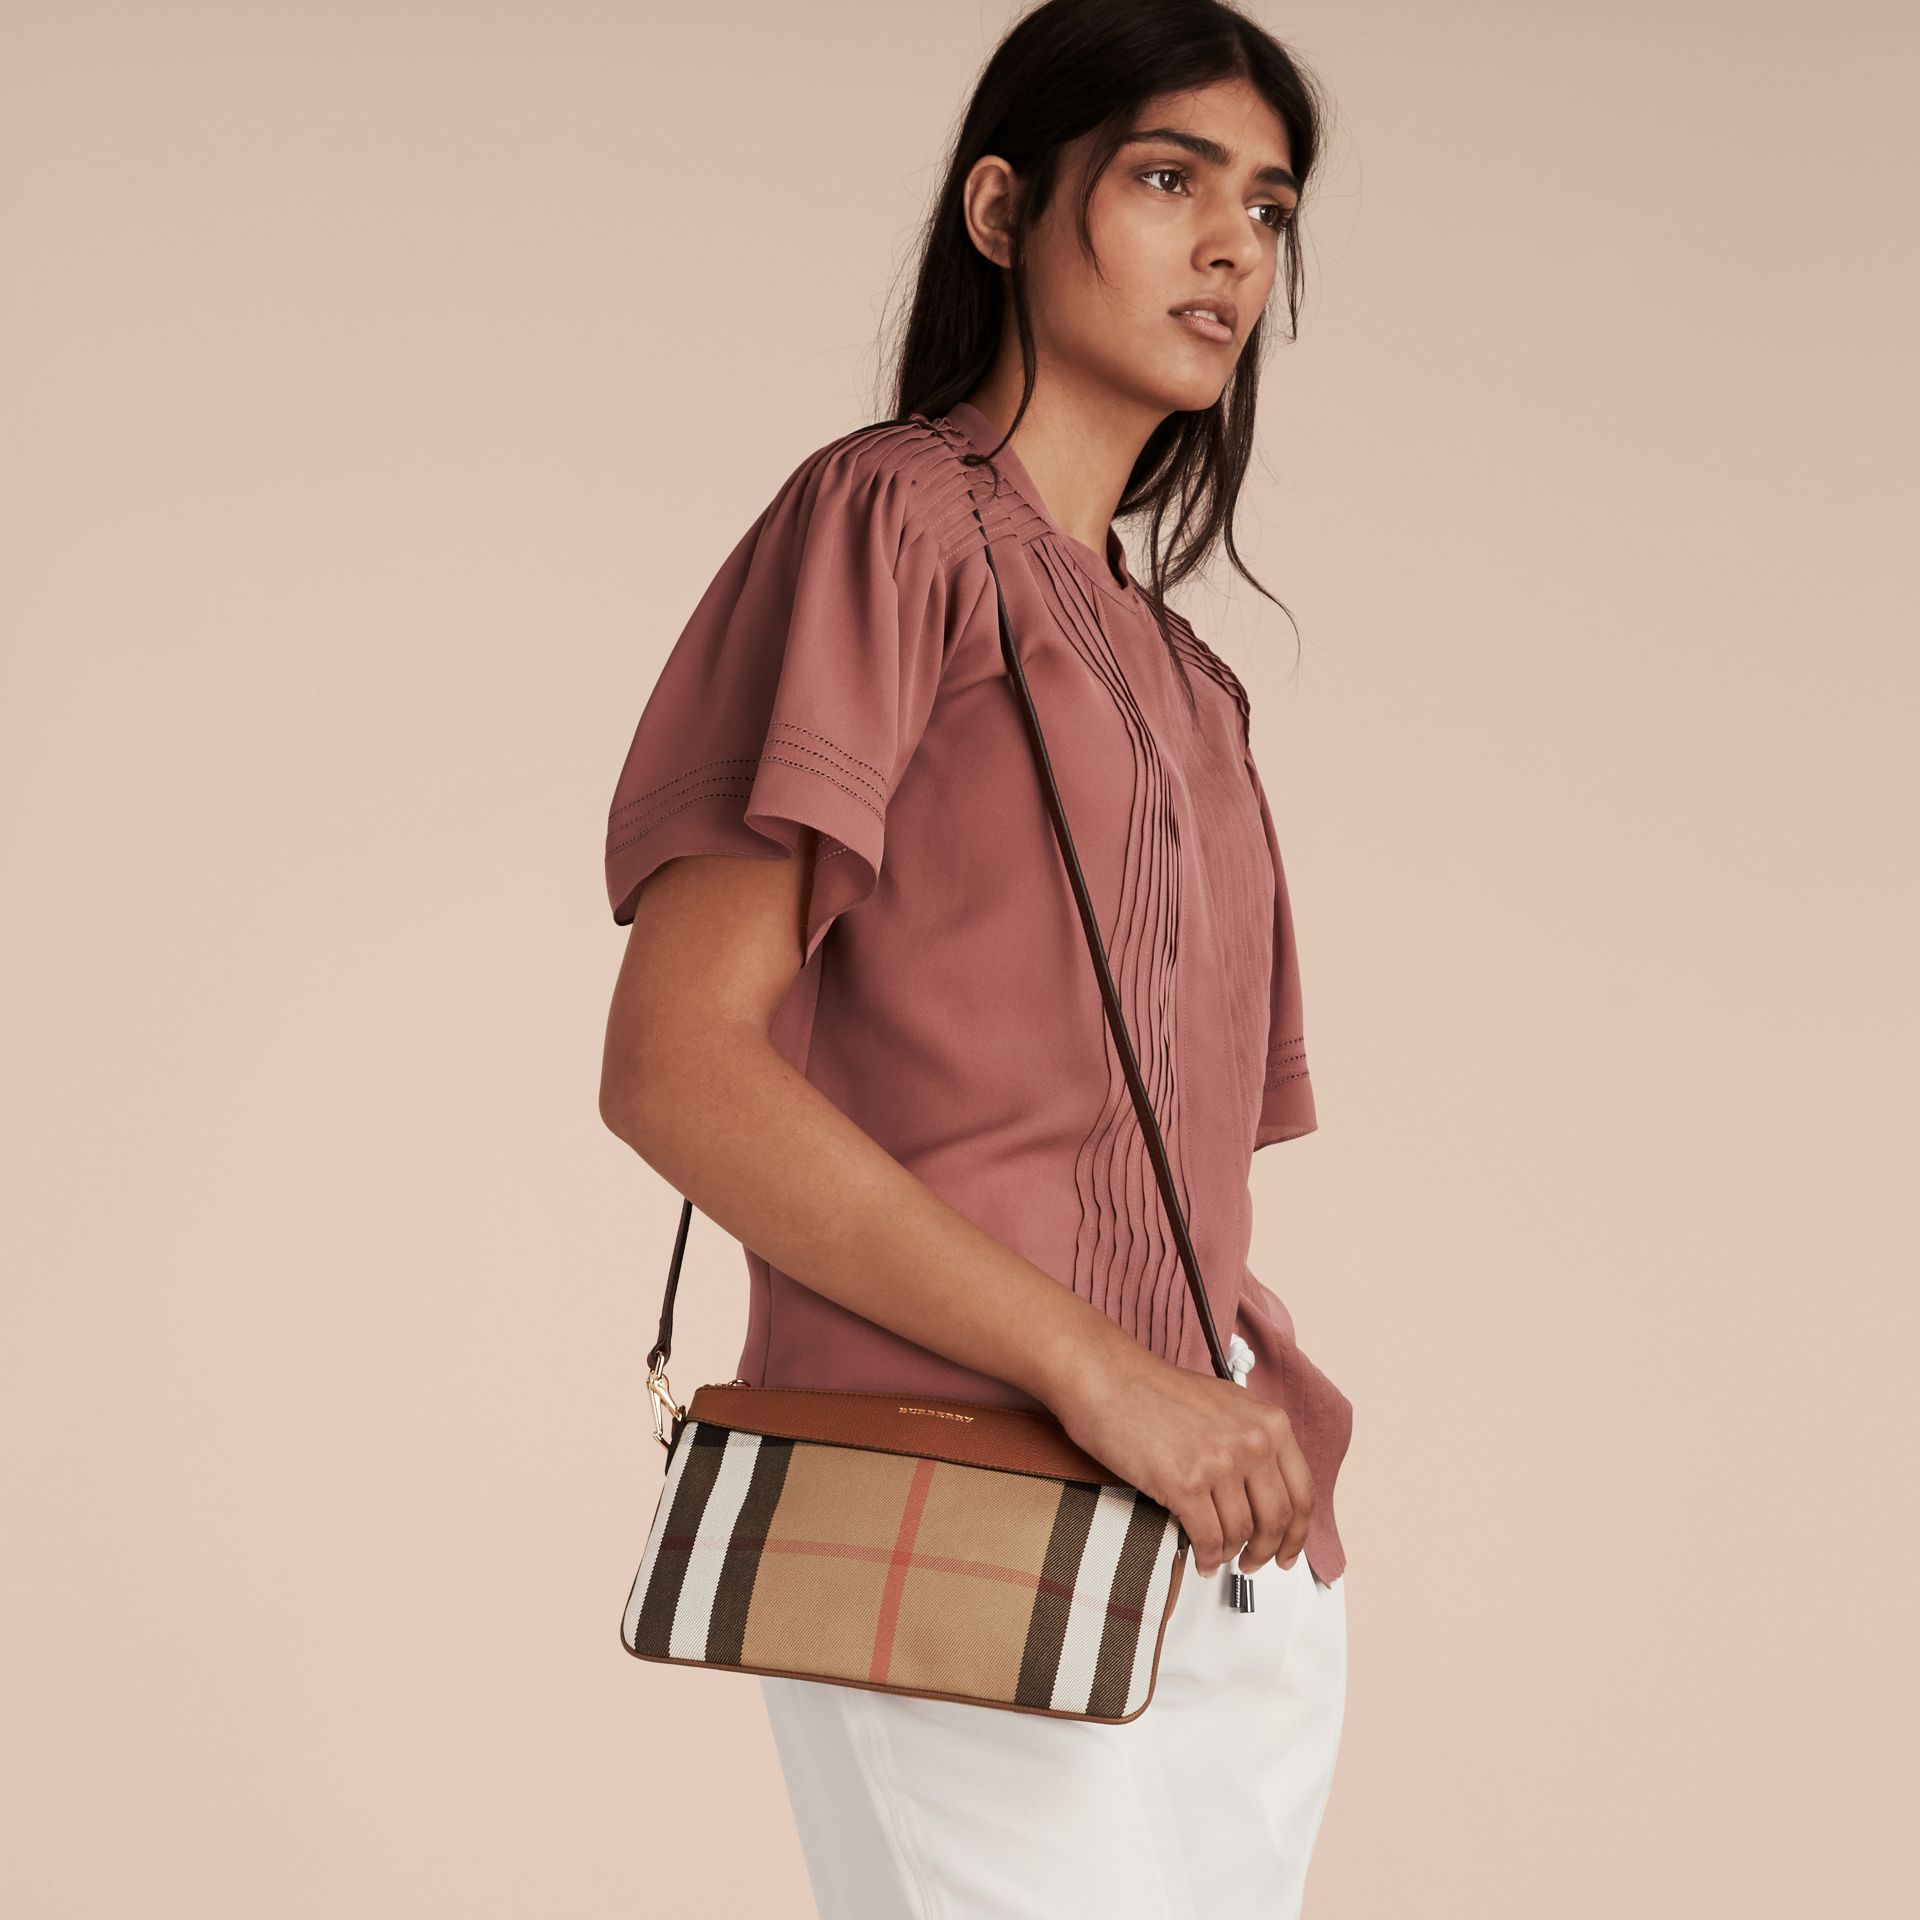 House Check and Leather Clutch Bag in Tan - Women | Burberry Singapore - gallery image 2